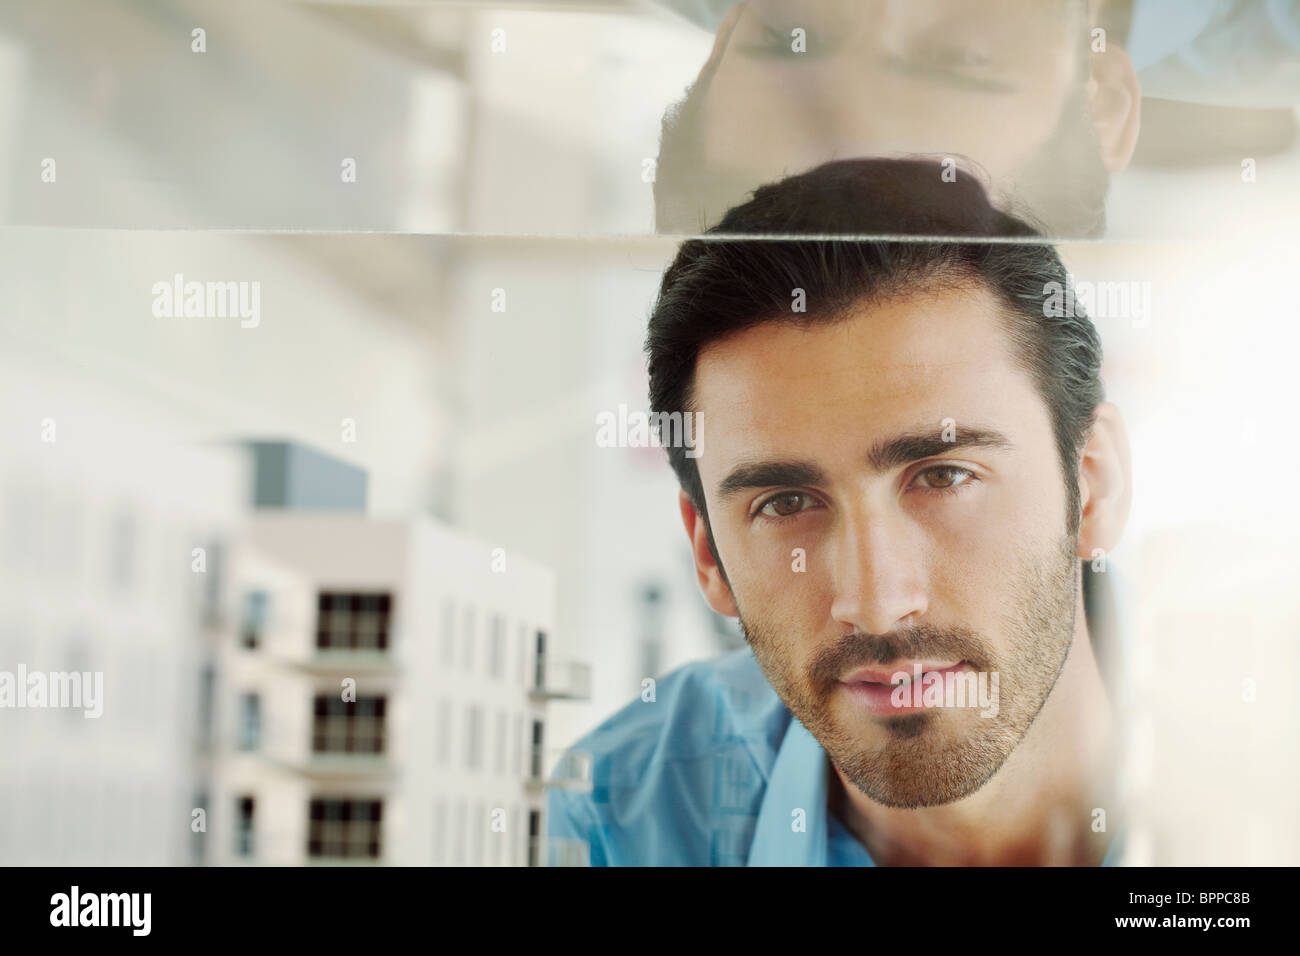 Young man with architectural model Stock Photo